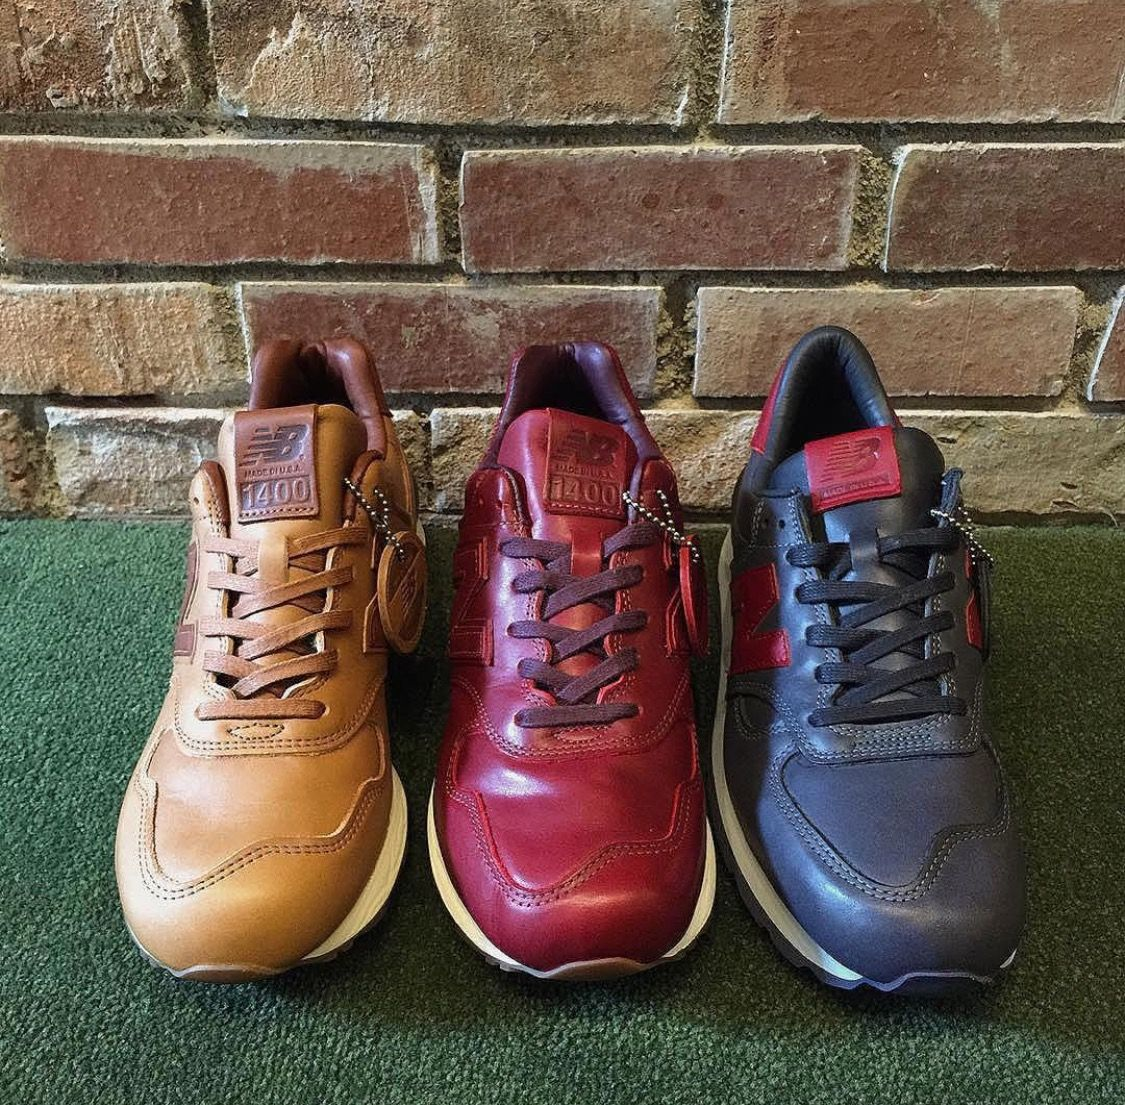 reputable site eaf2e 56d12 New Balance 1400 & 990 made from horween leather in the USA ...